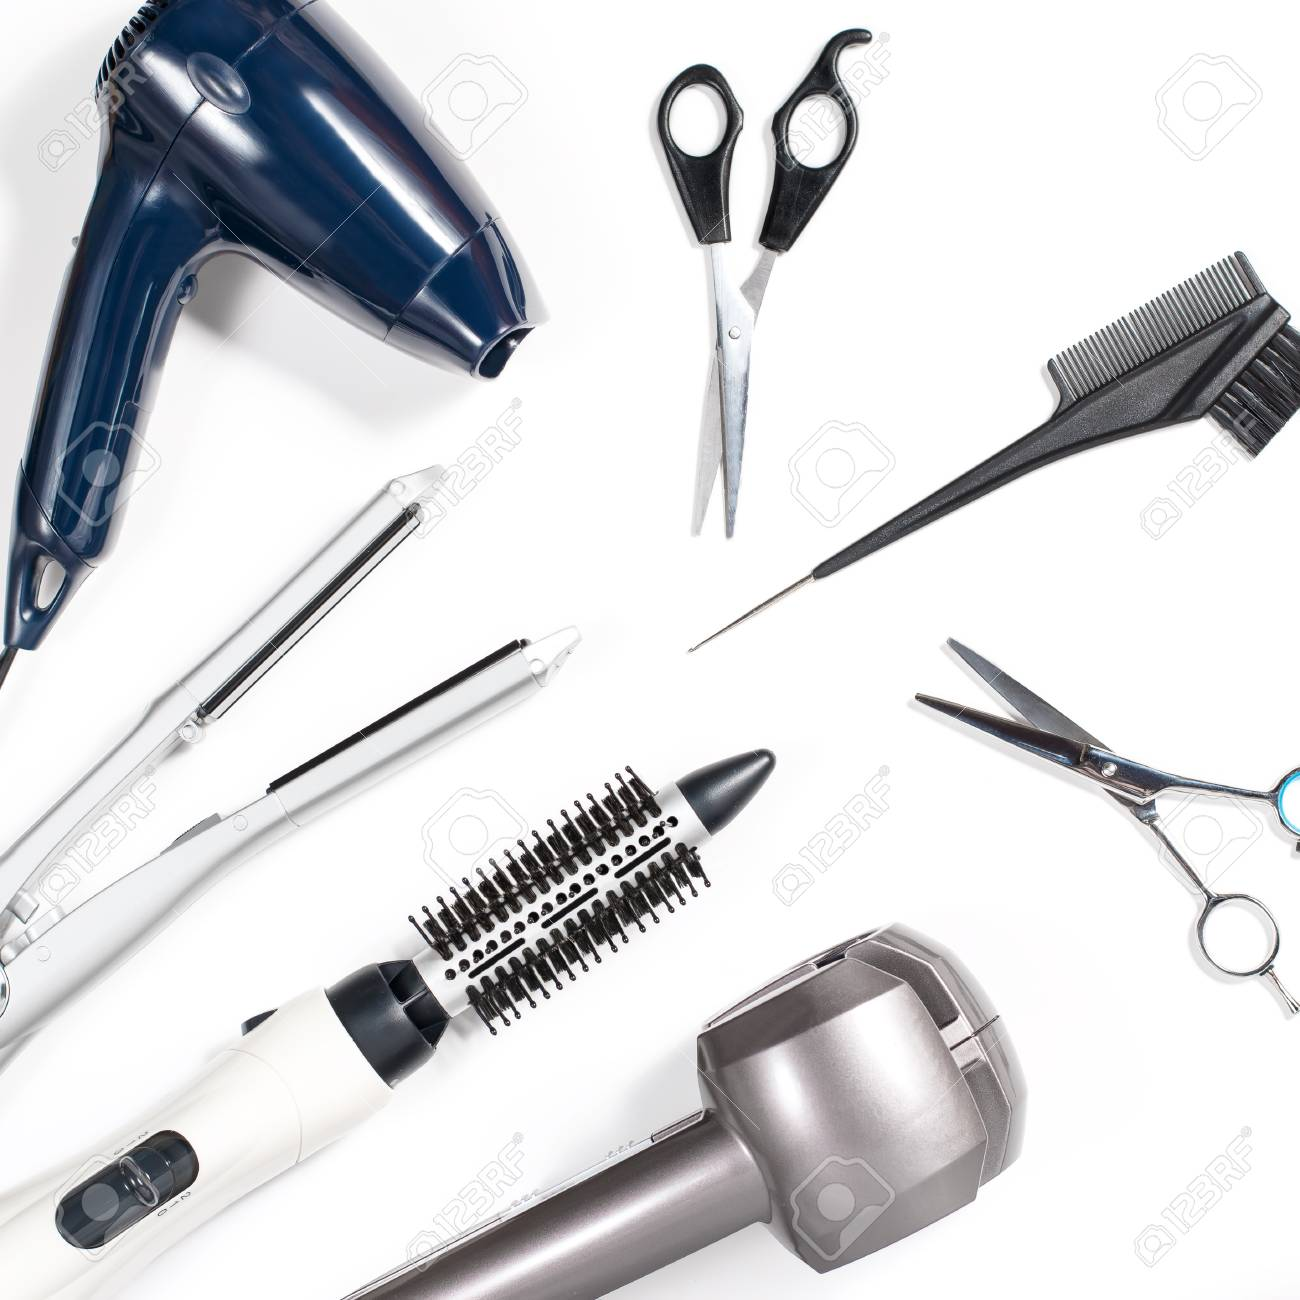 Various hair styling tools on white background, top view, copy space